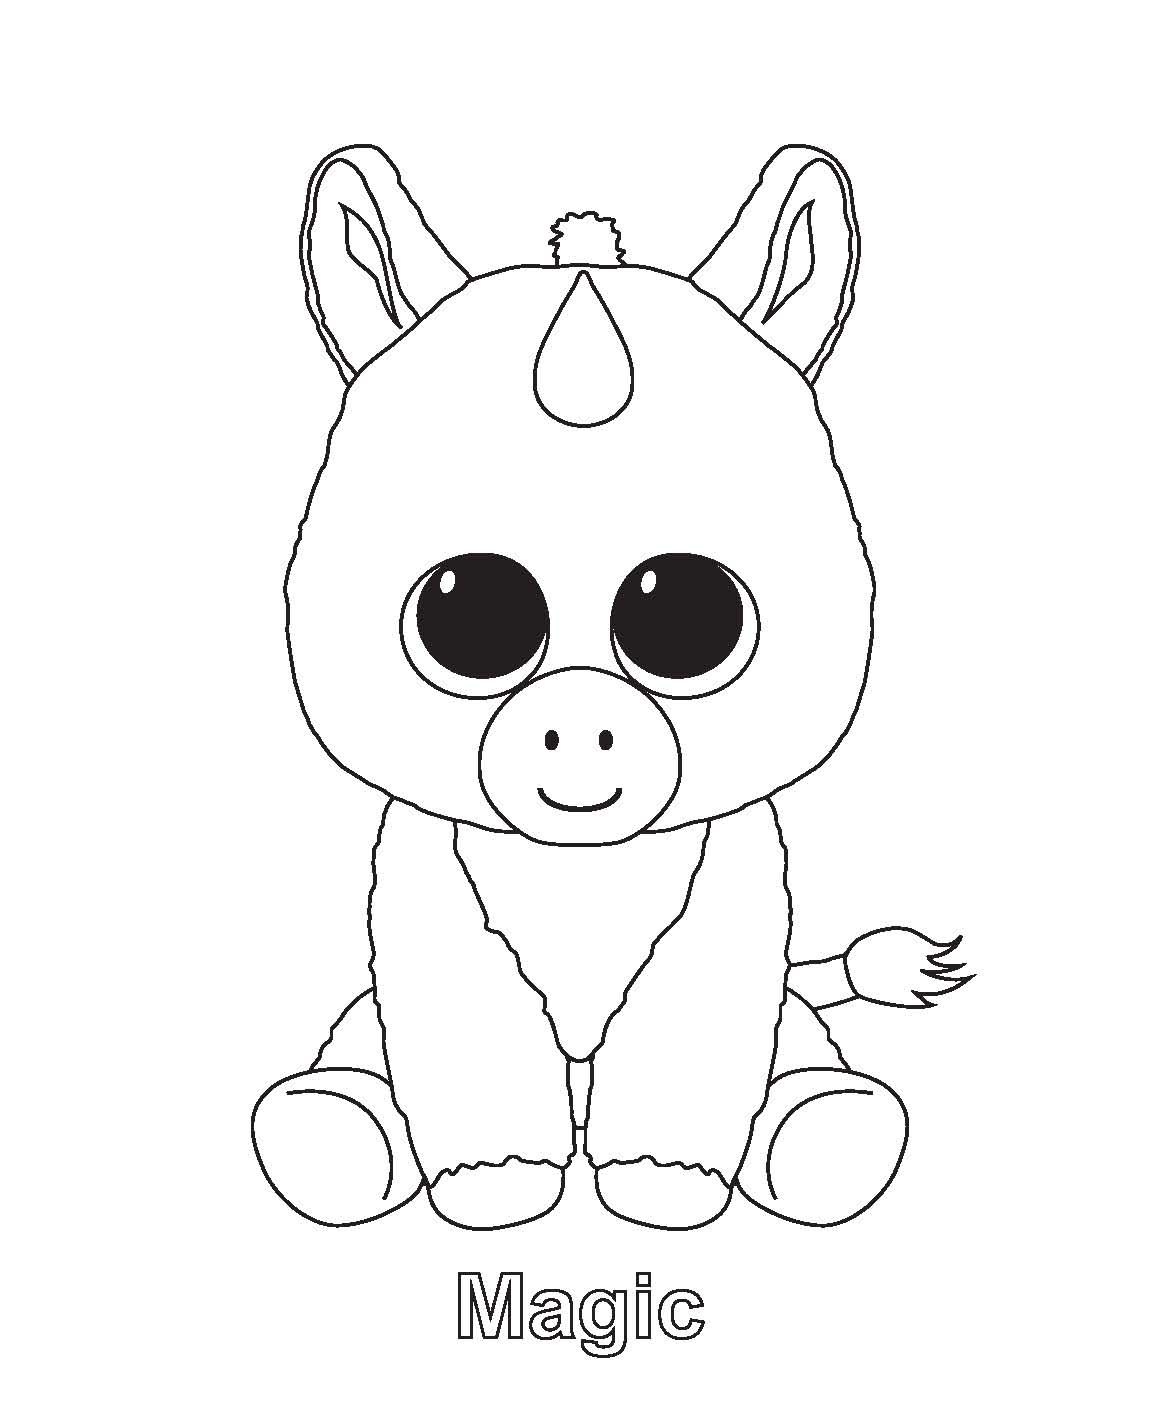 1170x1420 To Cute Unicorn Coloring Pages